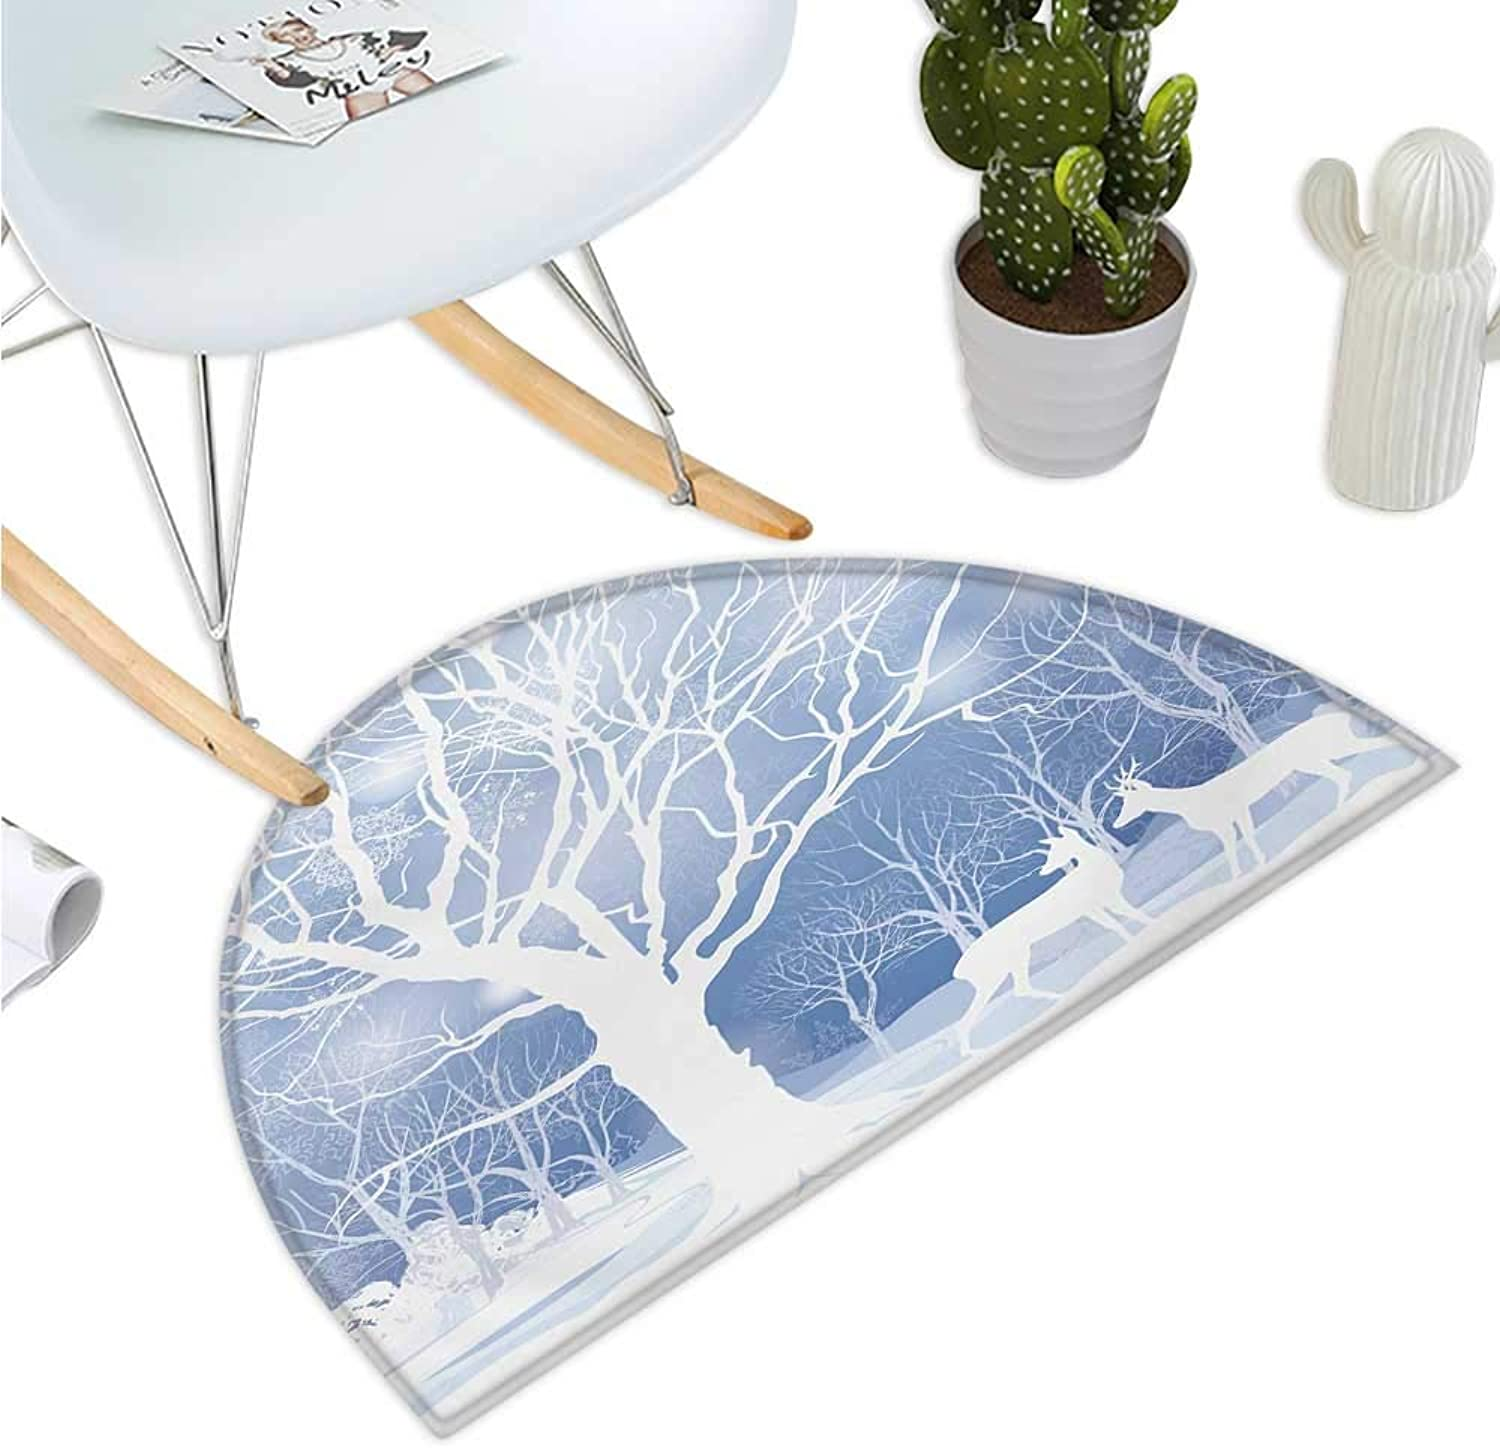 Winter Semicircular Cushion Abstract Winter Imagery with Snowy Weather Deer and Other Animals Seasonal Theme Bathroom Mat H 43.3  xD 64.9  bluee White